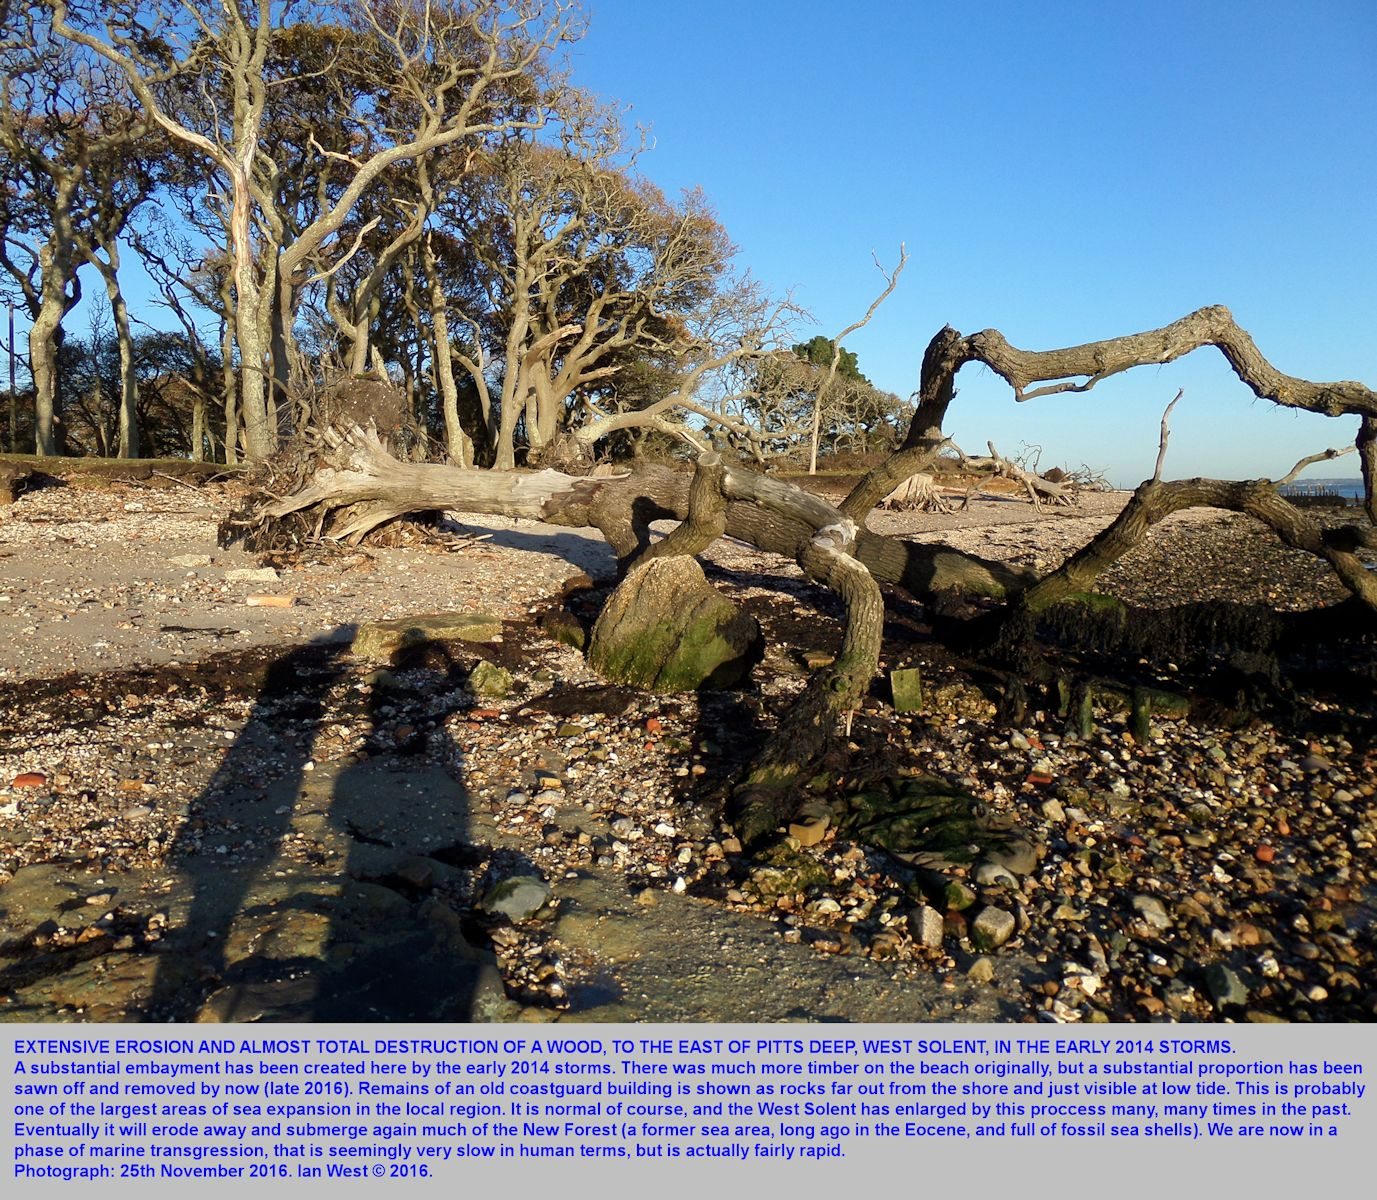 Major erosion of a wood, east of Pitts Deep, Solent Estuaries, southern England, mainly during the storms in early 2014, but as seen in November 2016